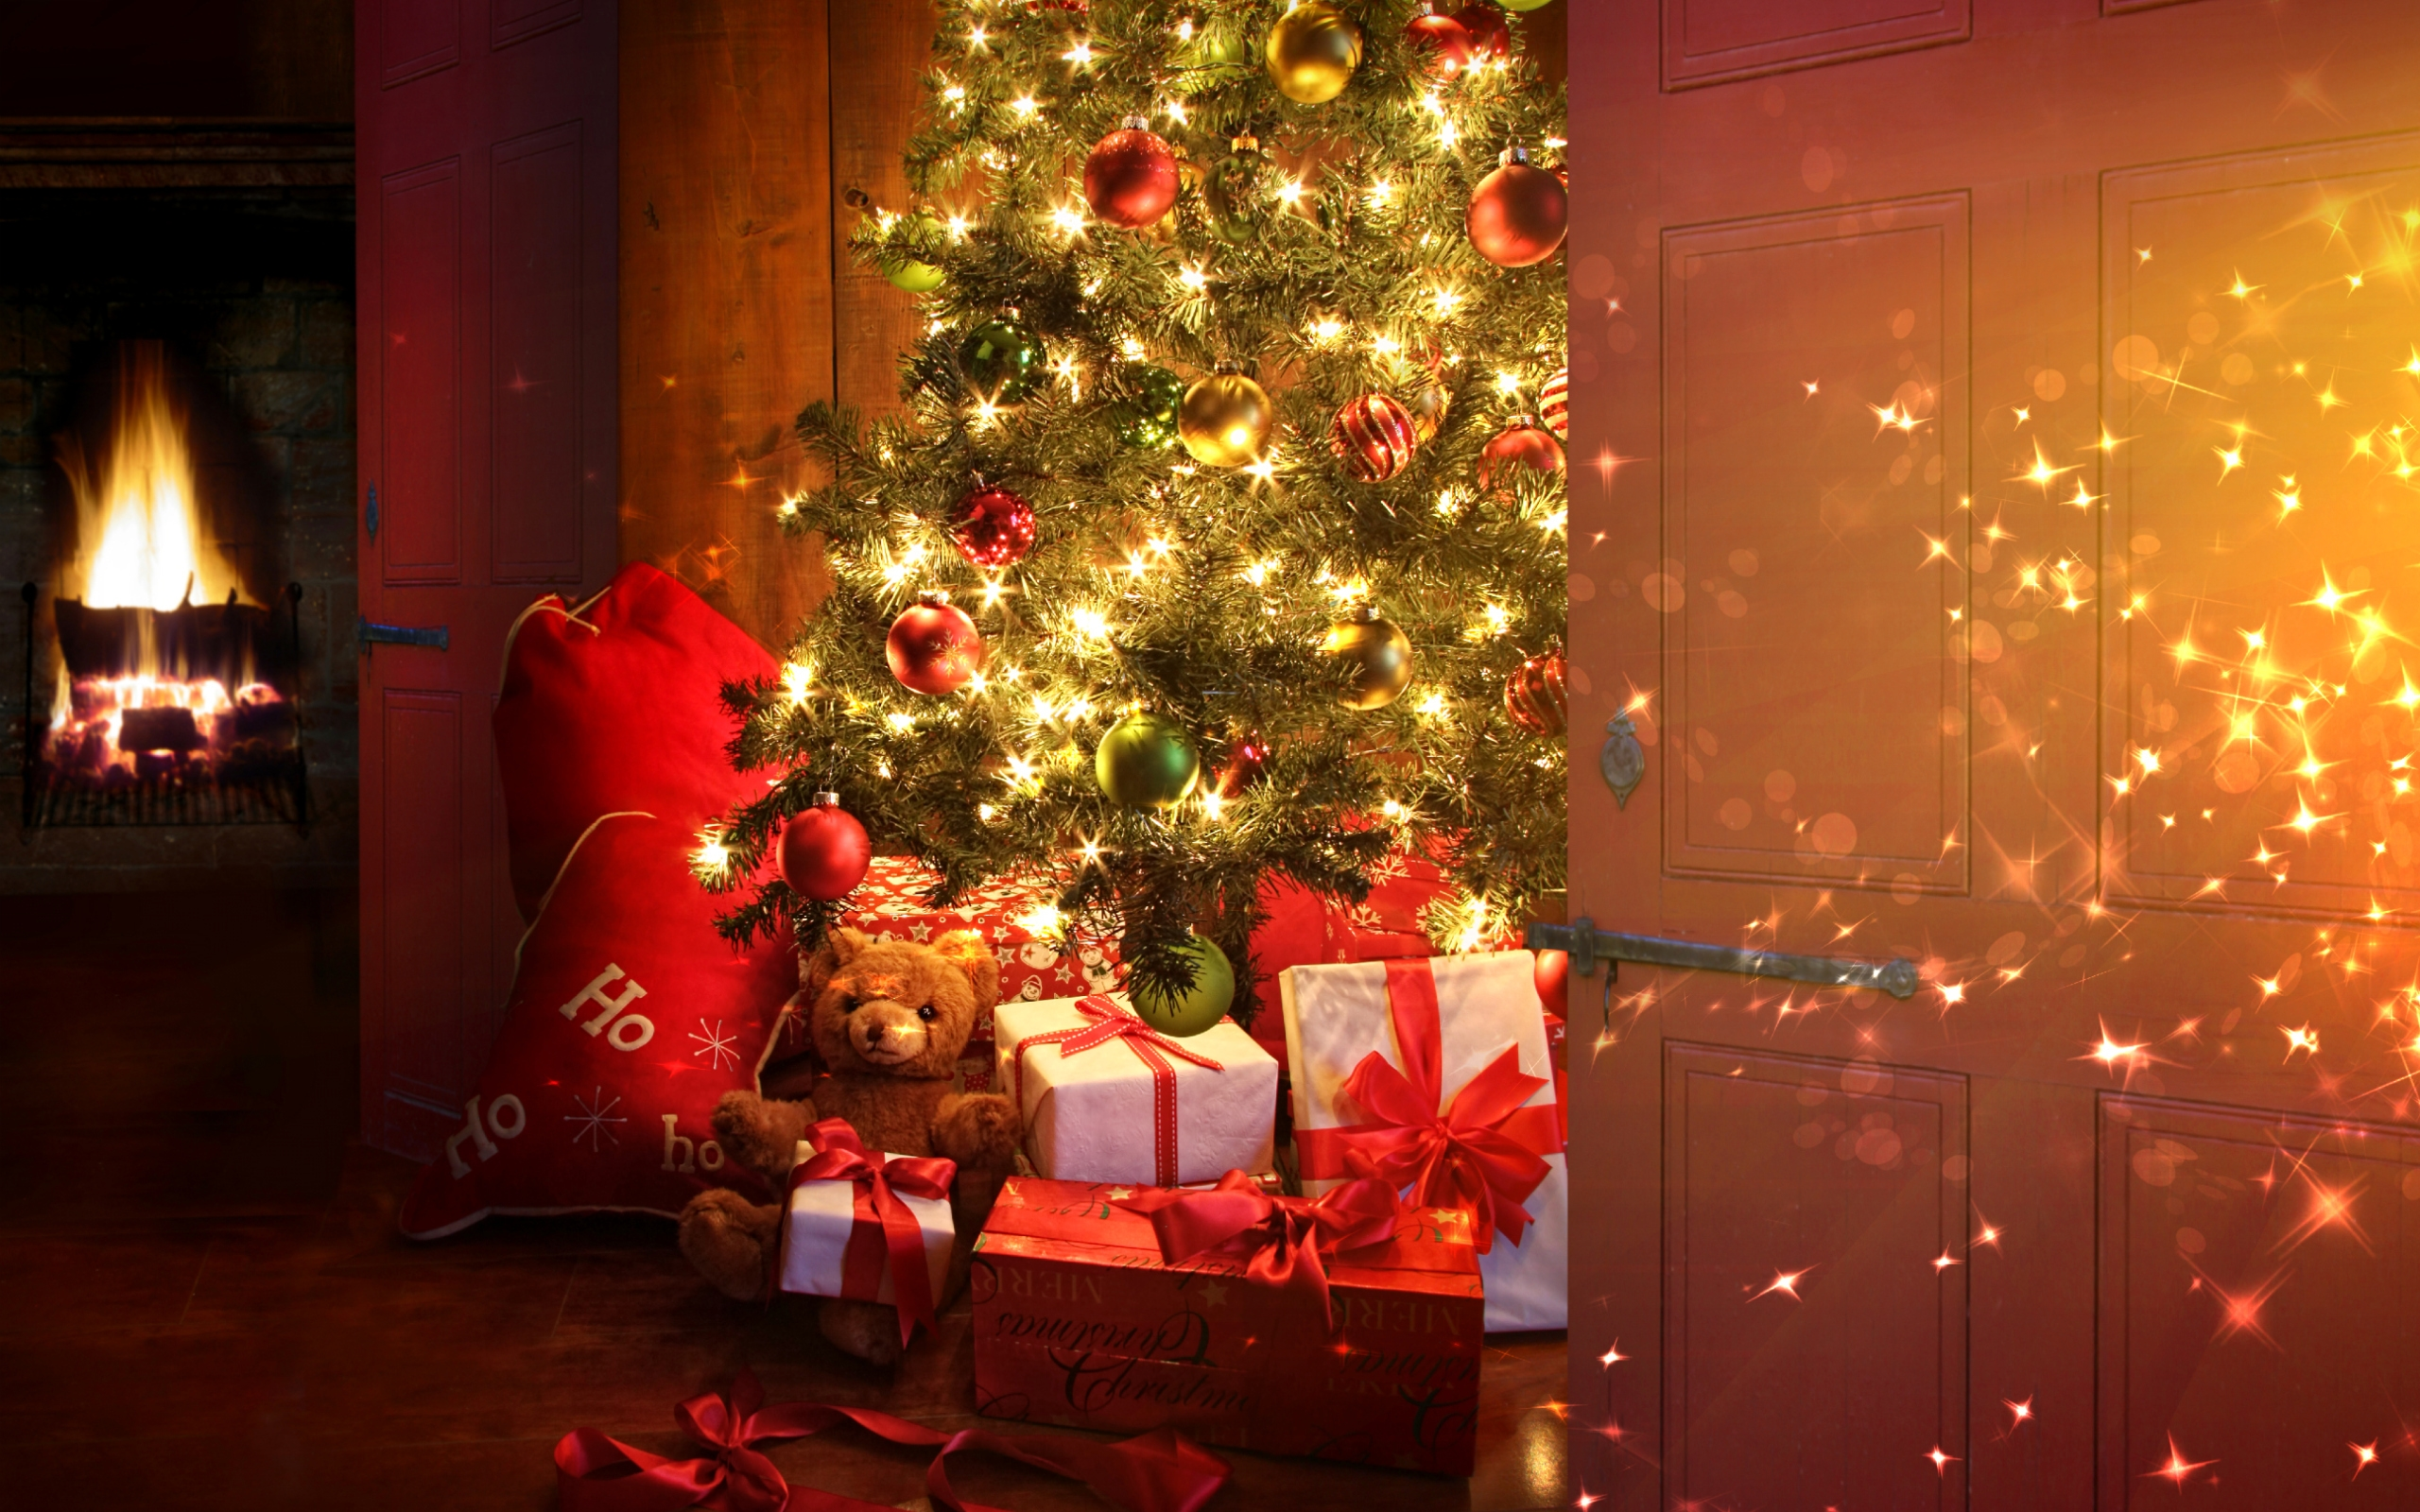 2560x1440 Christmas tree and presents YouTube Channel Cover